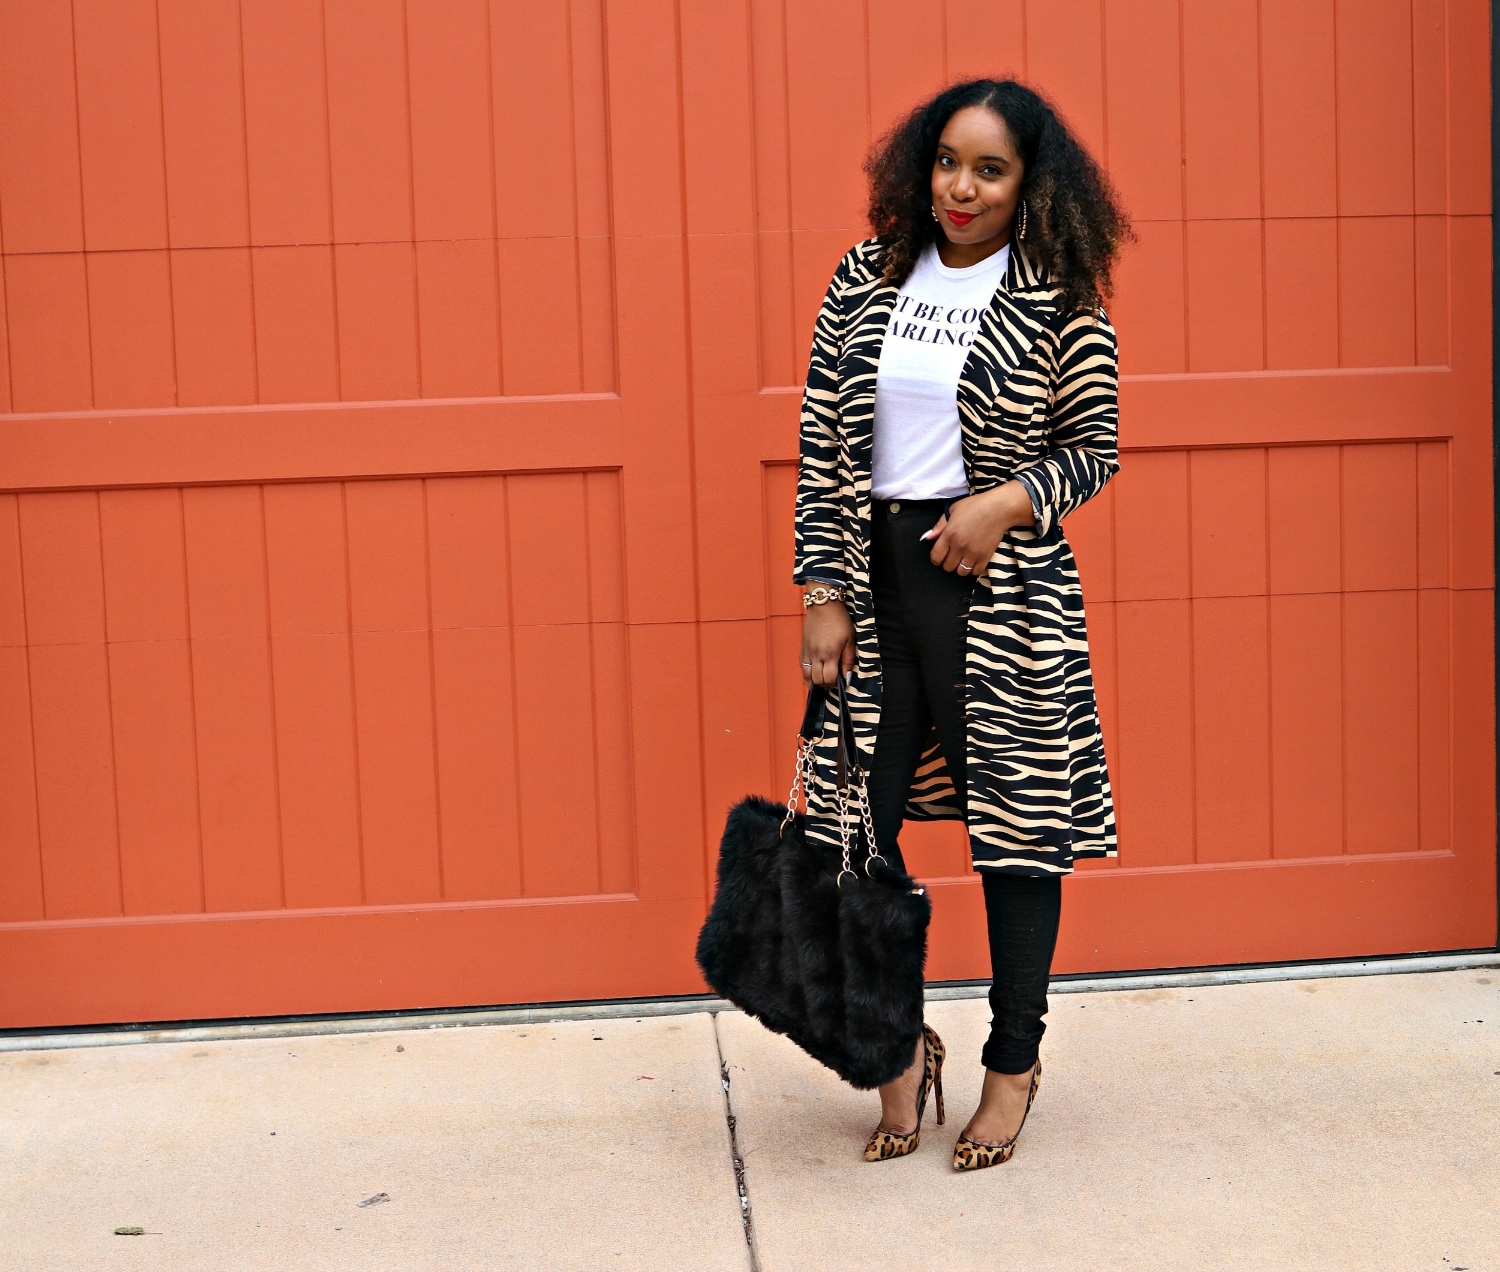 Leopard Pumps and a Animal Trench Coat